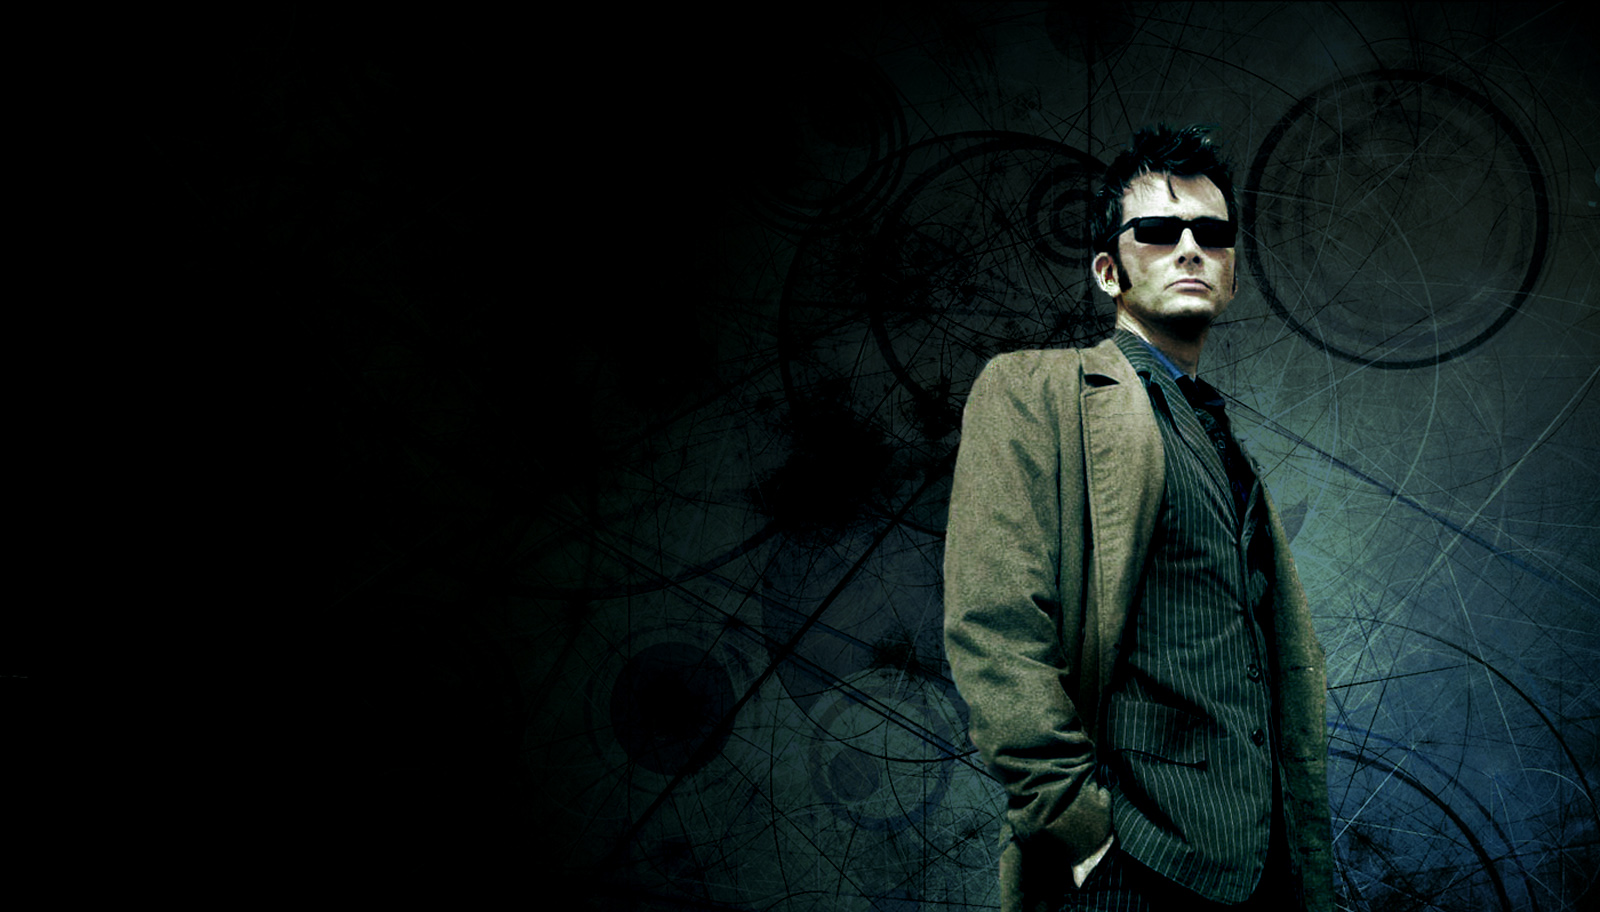 Central Wallpaper: David Tennant Doctor Who HD Photo Wallpapers